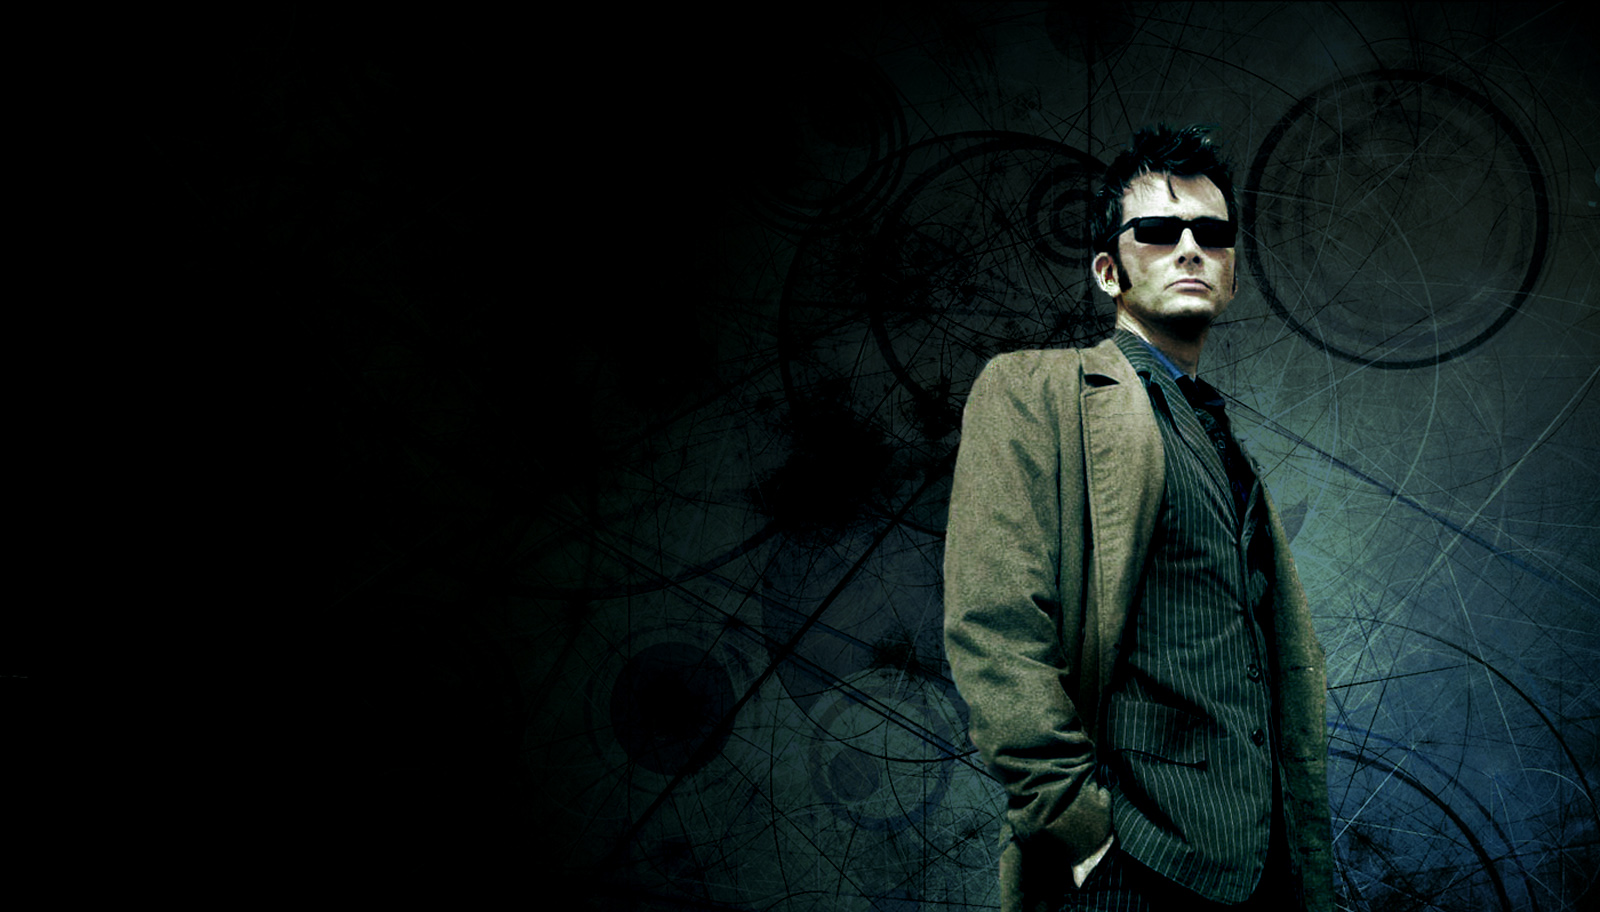 Central Wallpaper: David Tennant Doctor Who HD Photo Wallpapers